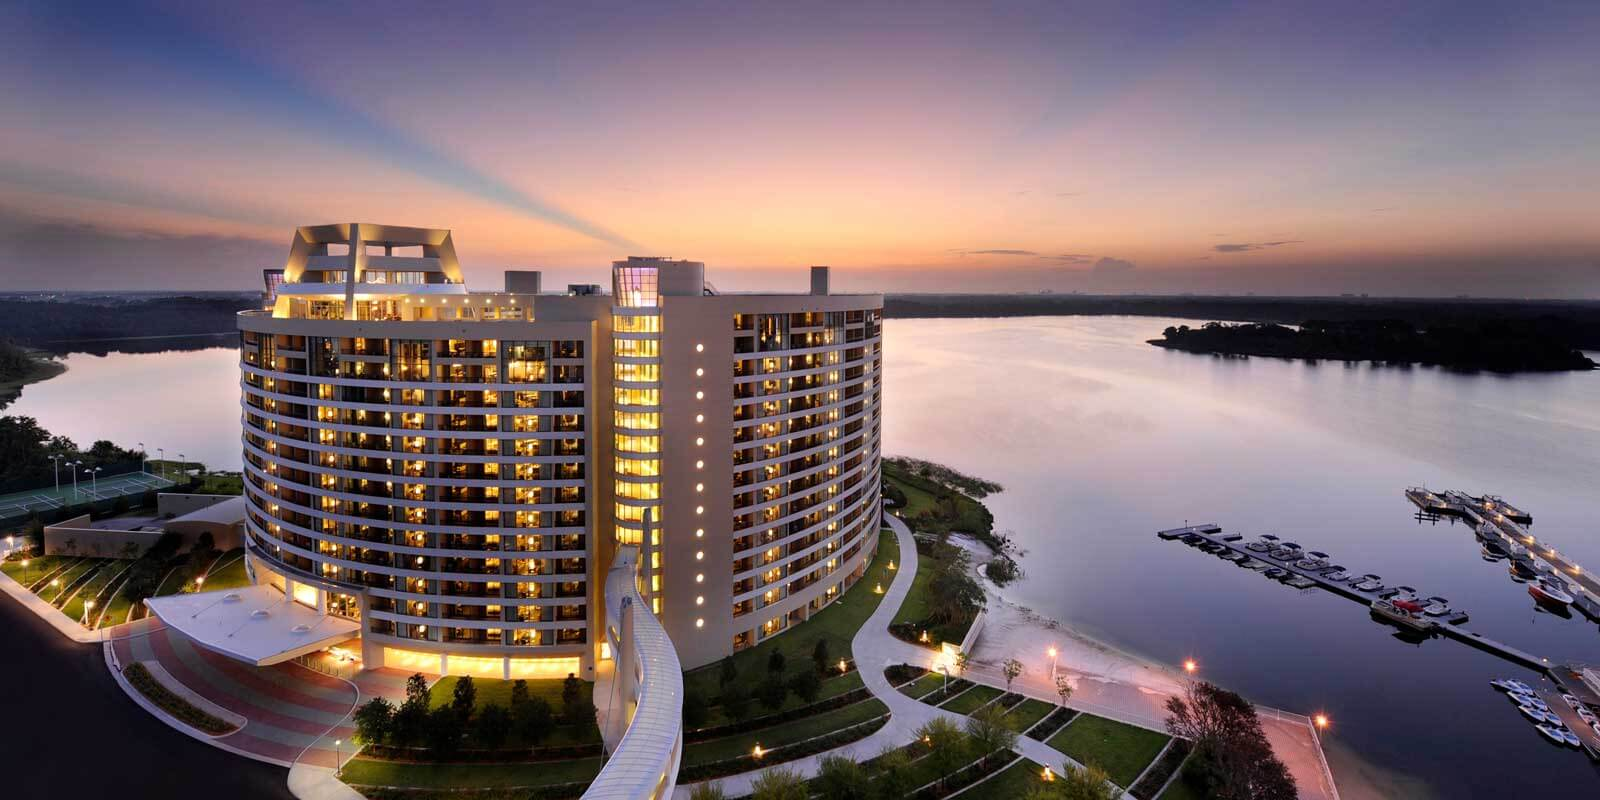 Photograph of Bay Lake Tower at sunset